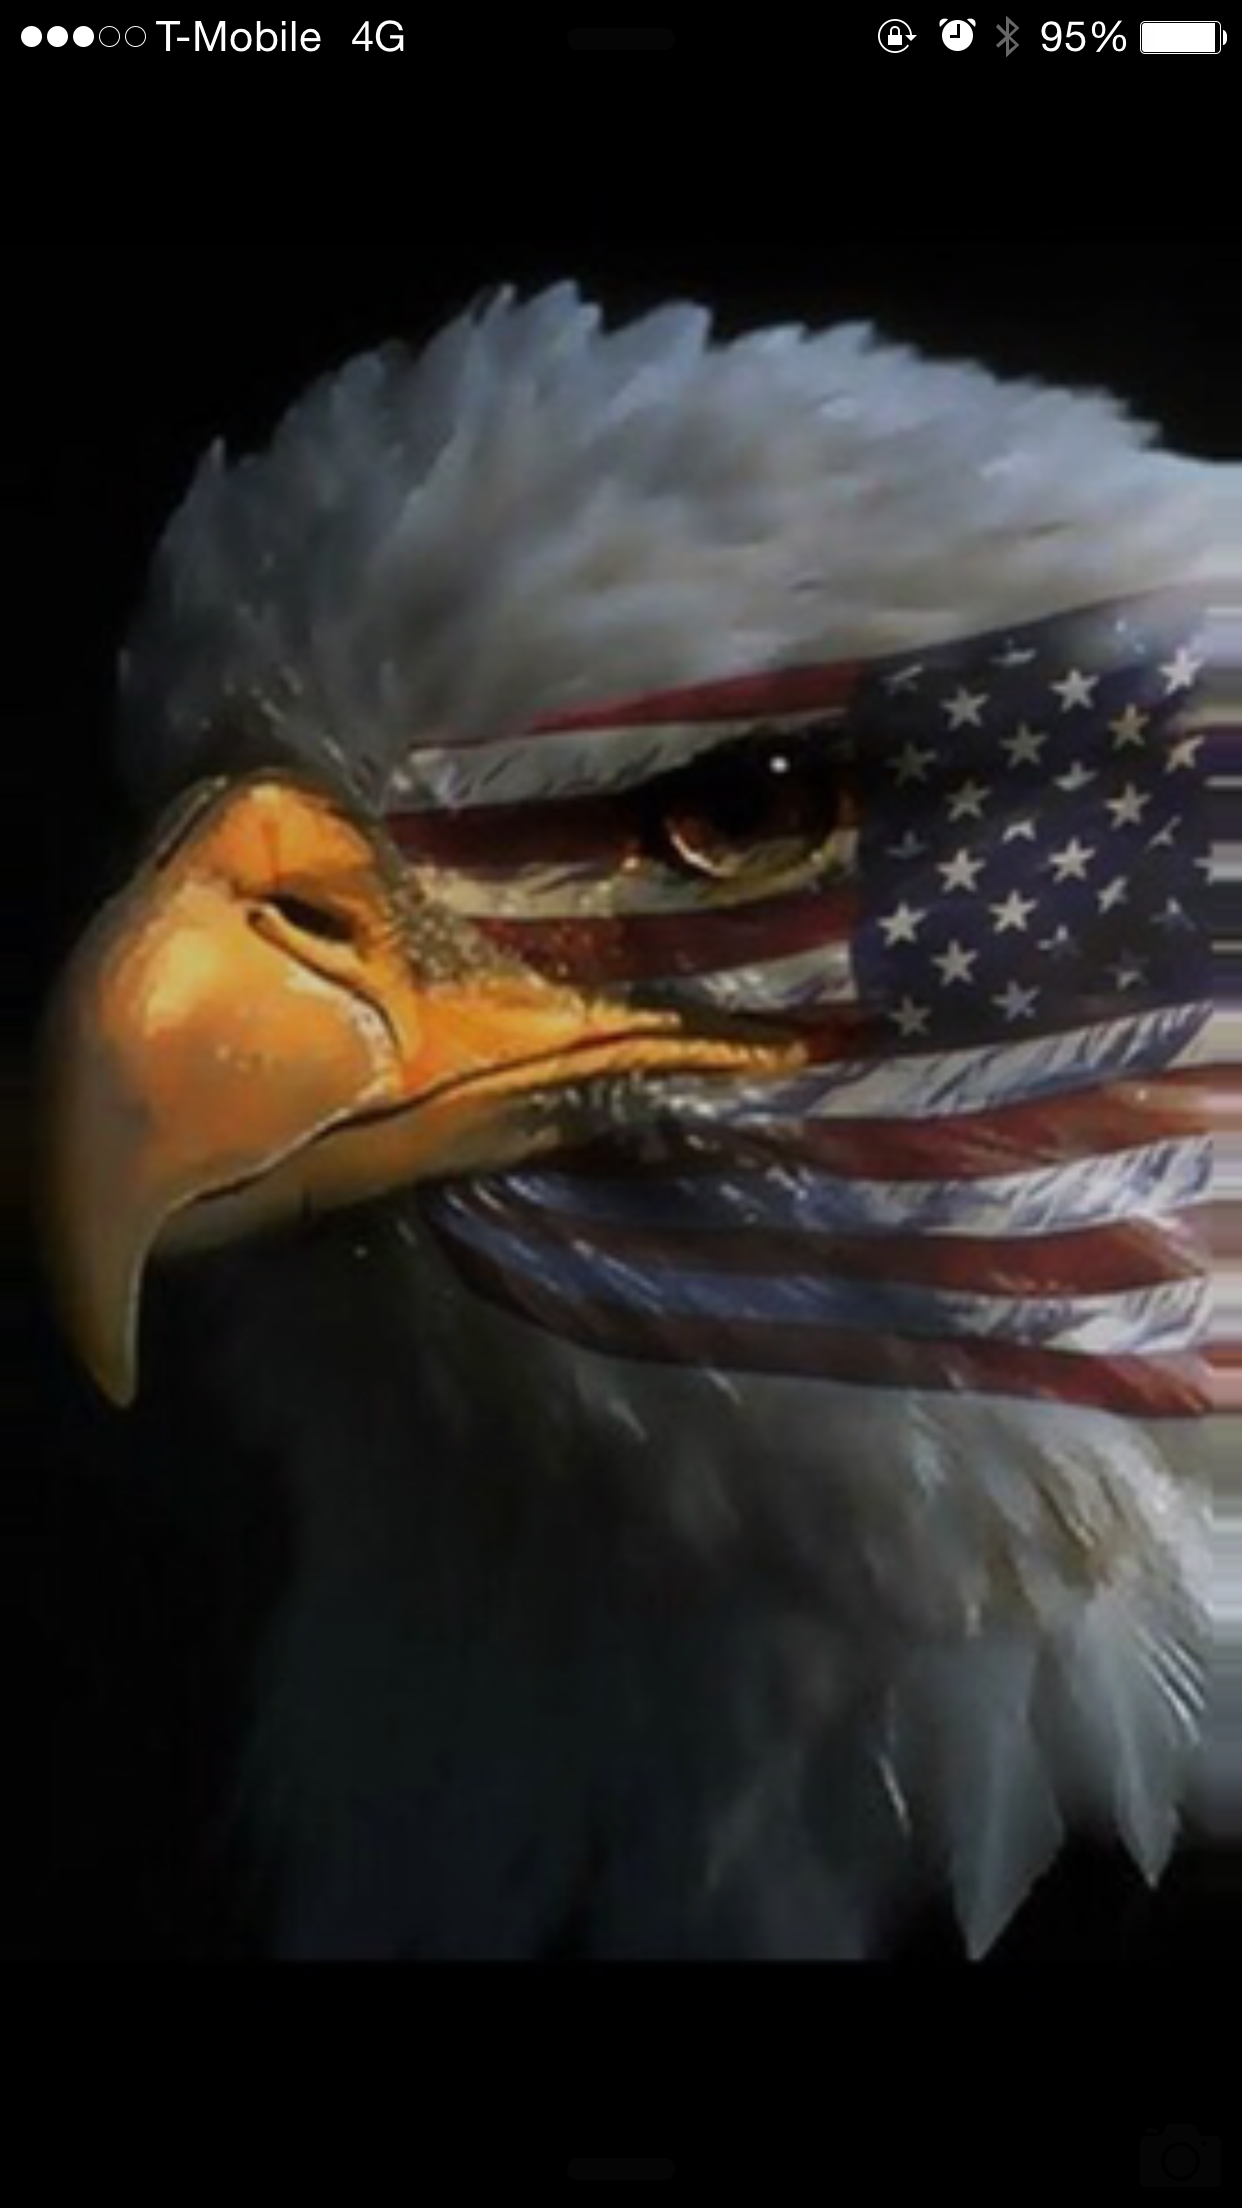 Pin By Kjspoo On Eagles Eagle Pictures Patriotic Pictures Eagle Images